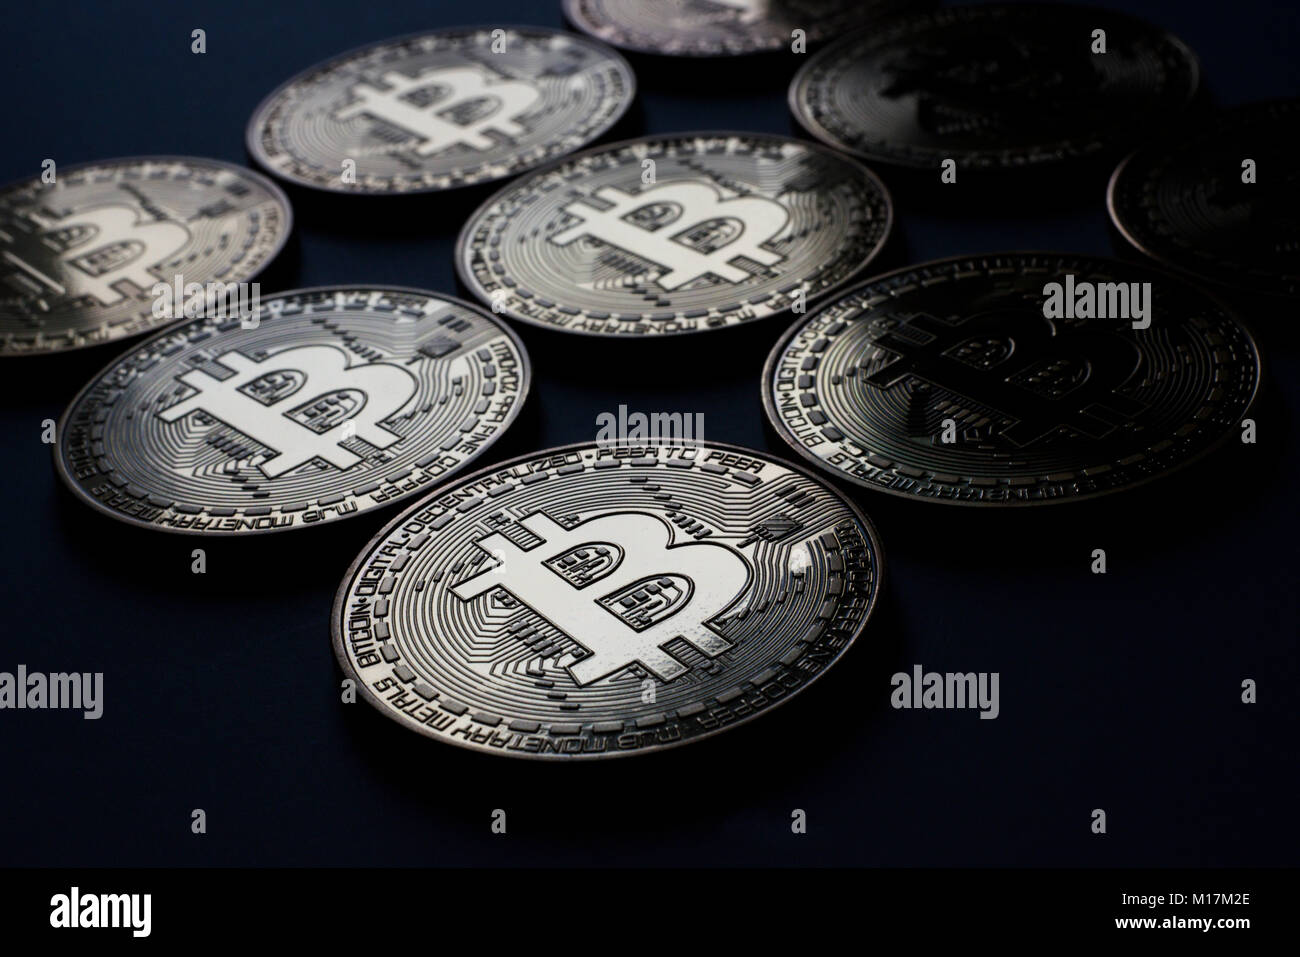 Minted Bitcoin Cryptocurrency Token Coin Multiple Coins Close Up View Stock Photo Alamy